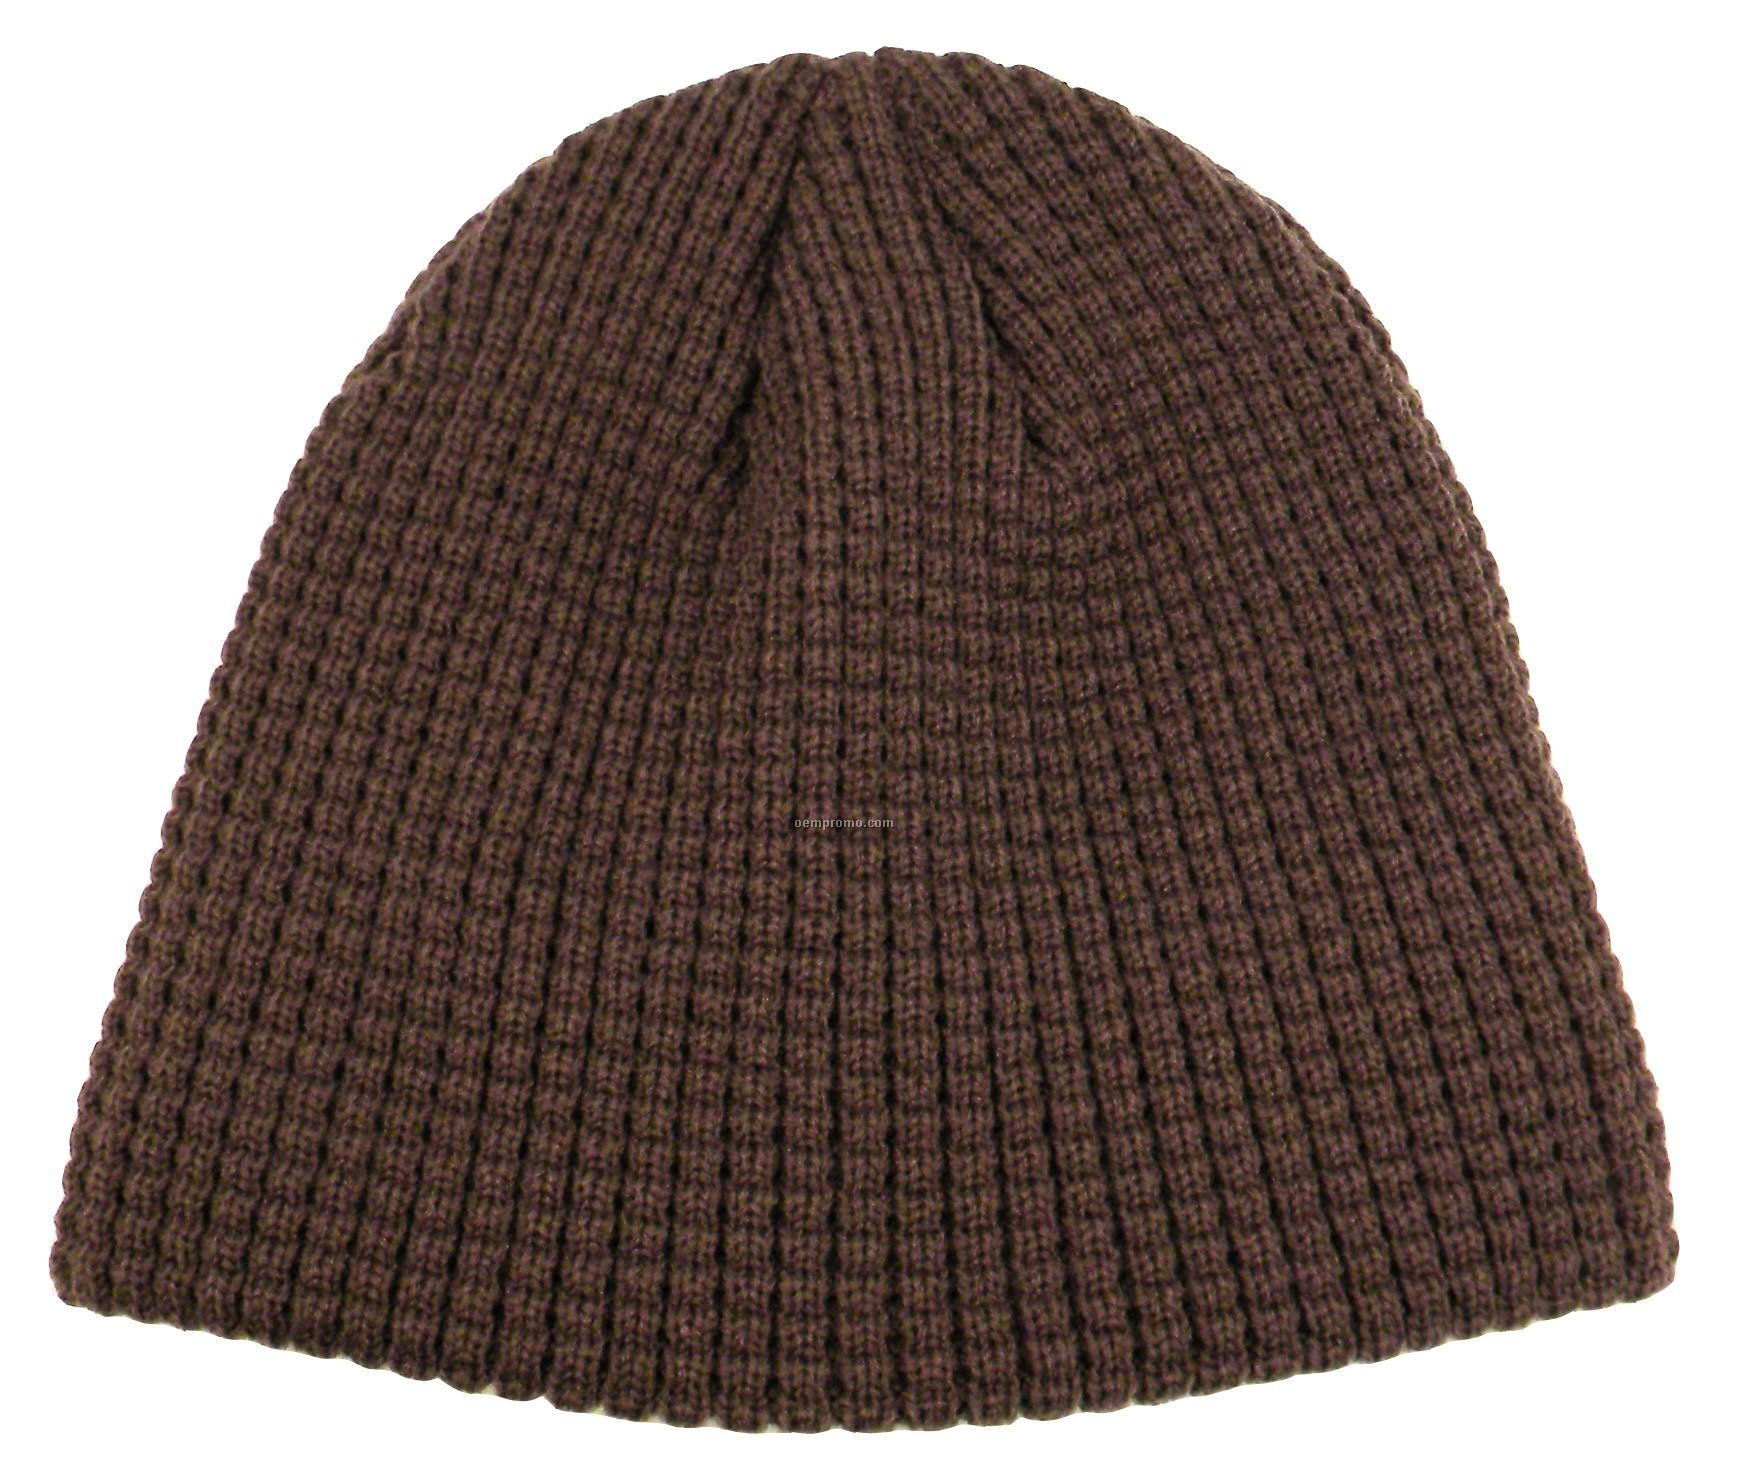 Solid Colored Big Bear Eco Beanie (Blank)